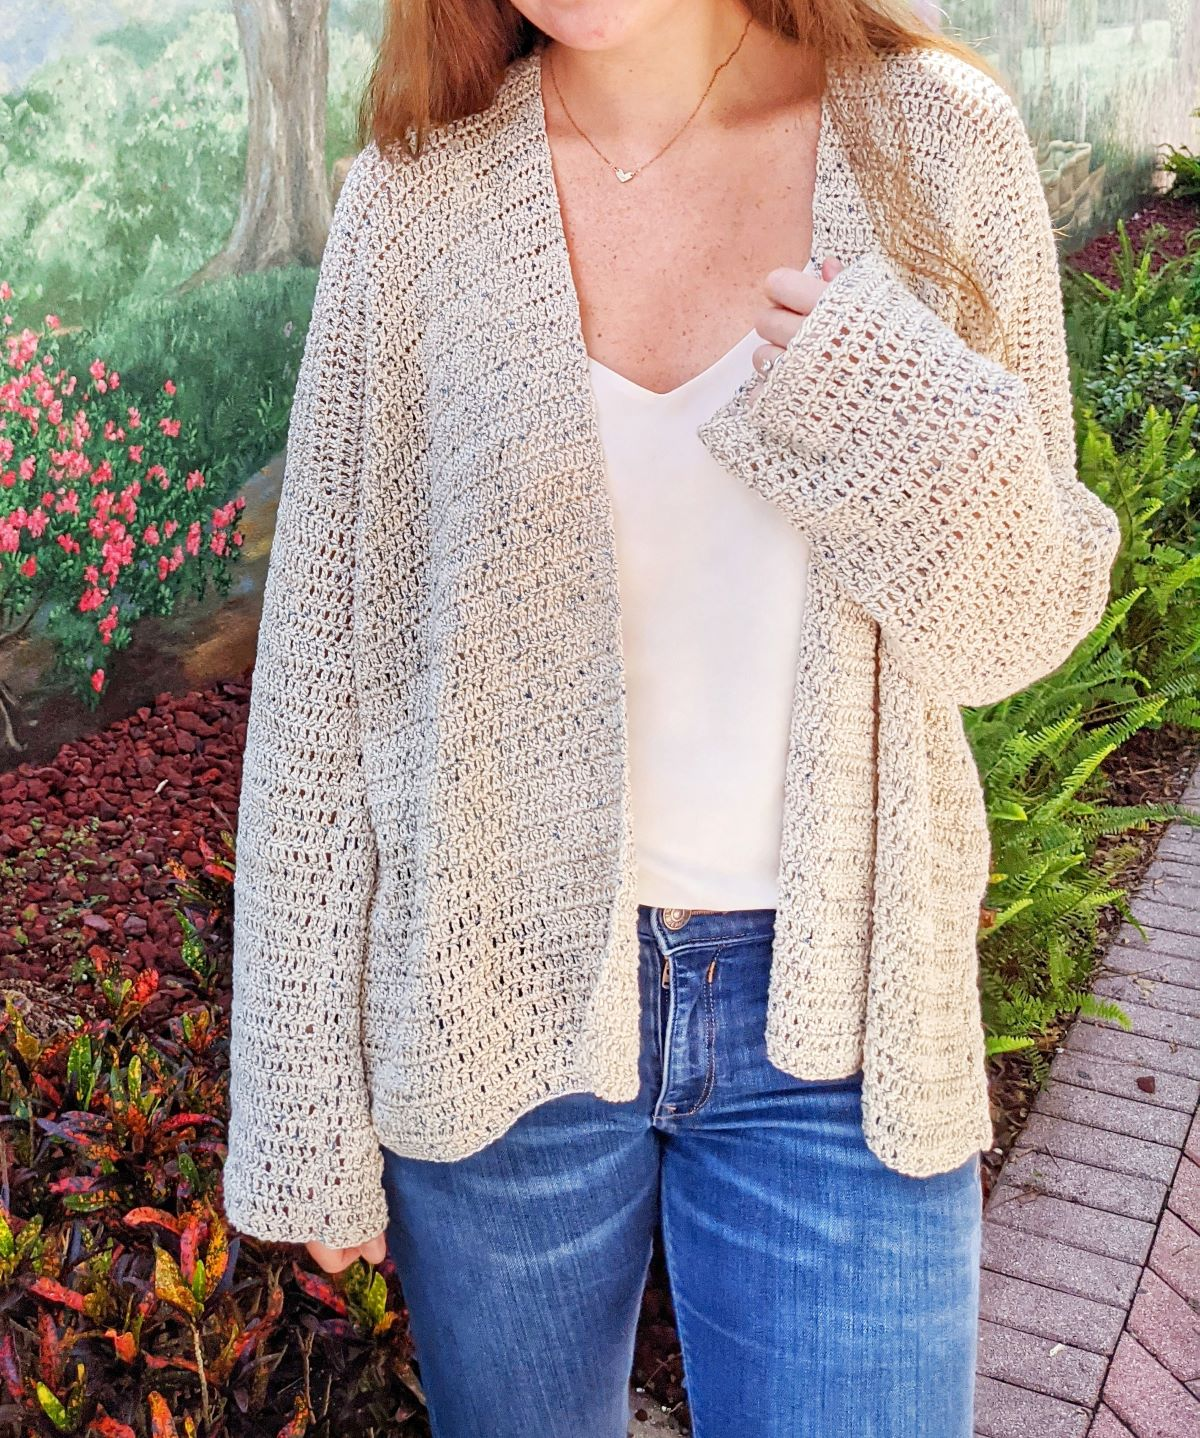 model is showing a front view of the beginner oversized crochet cardigan pattern